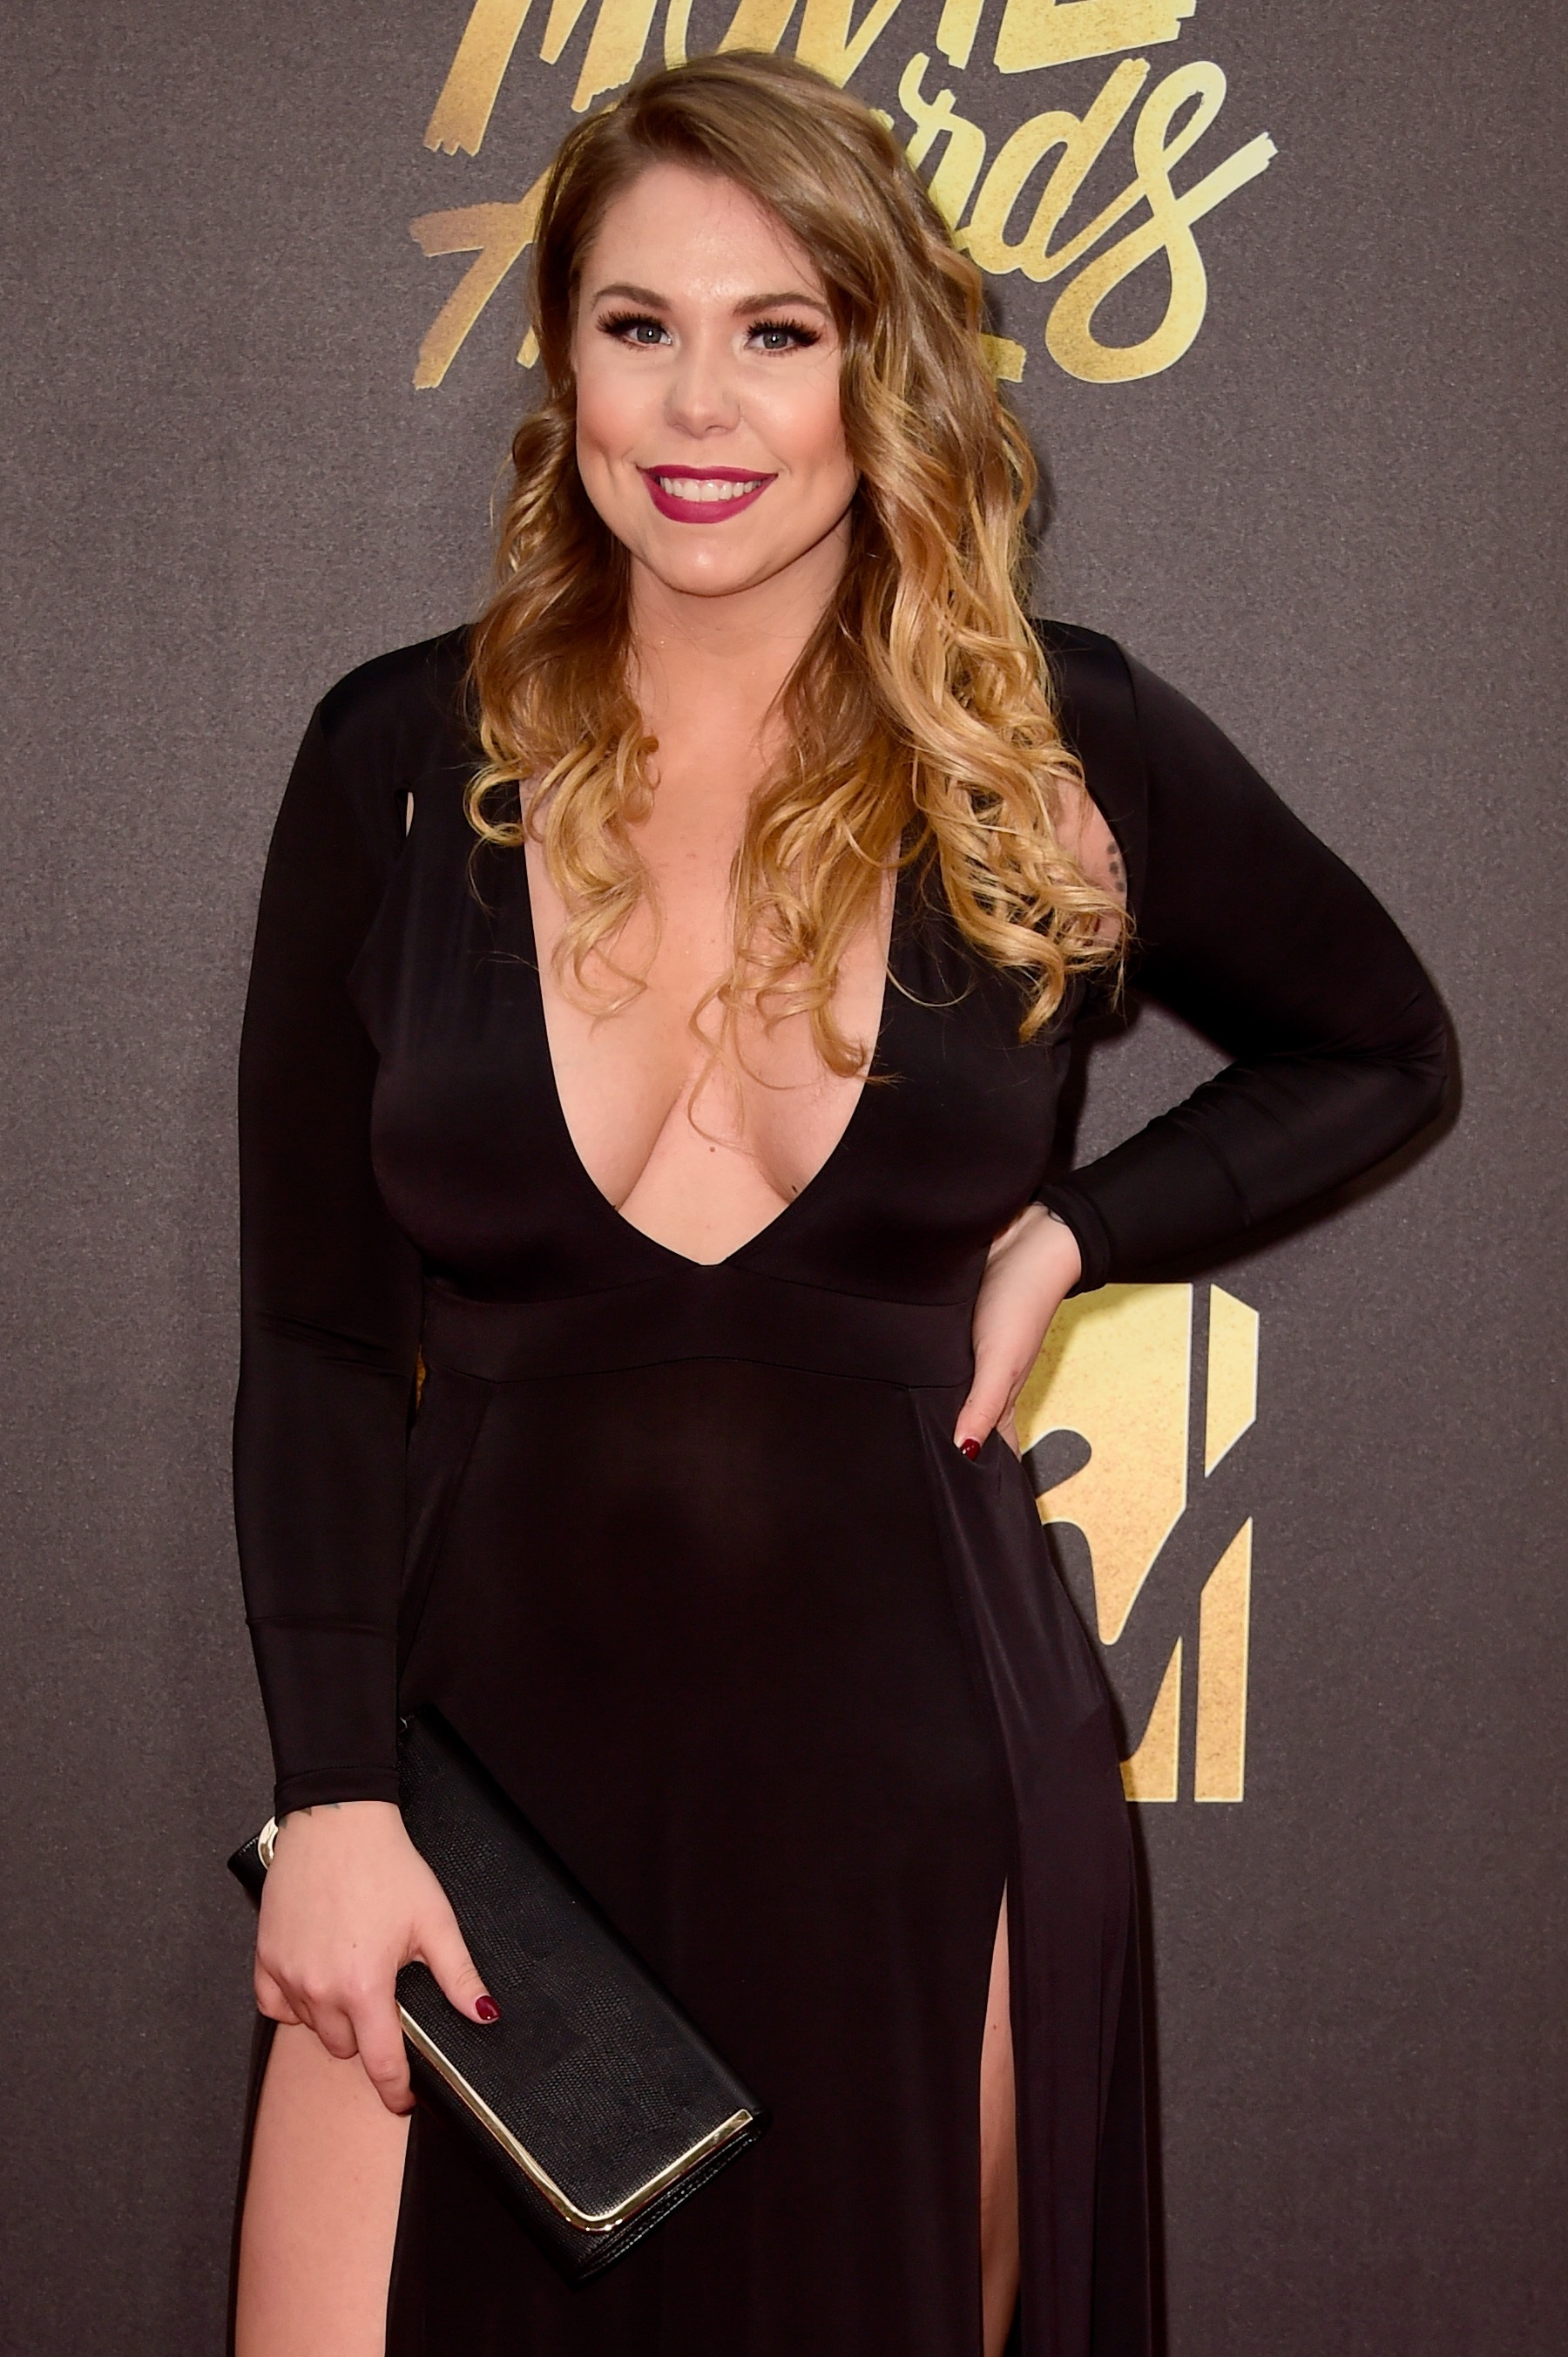 Kailyn Lowry Wiki,Bio,Age,Profile,Images,Boyfriend, Teen Mom 2 | Full Details